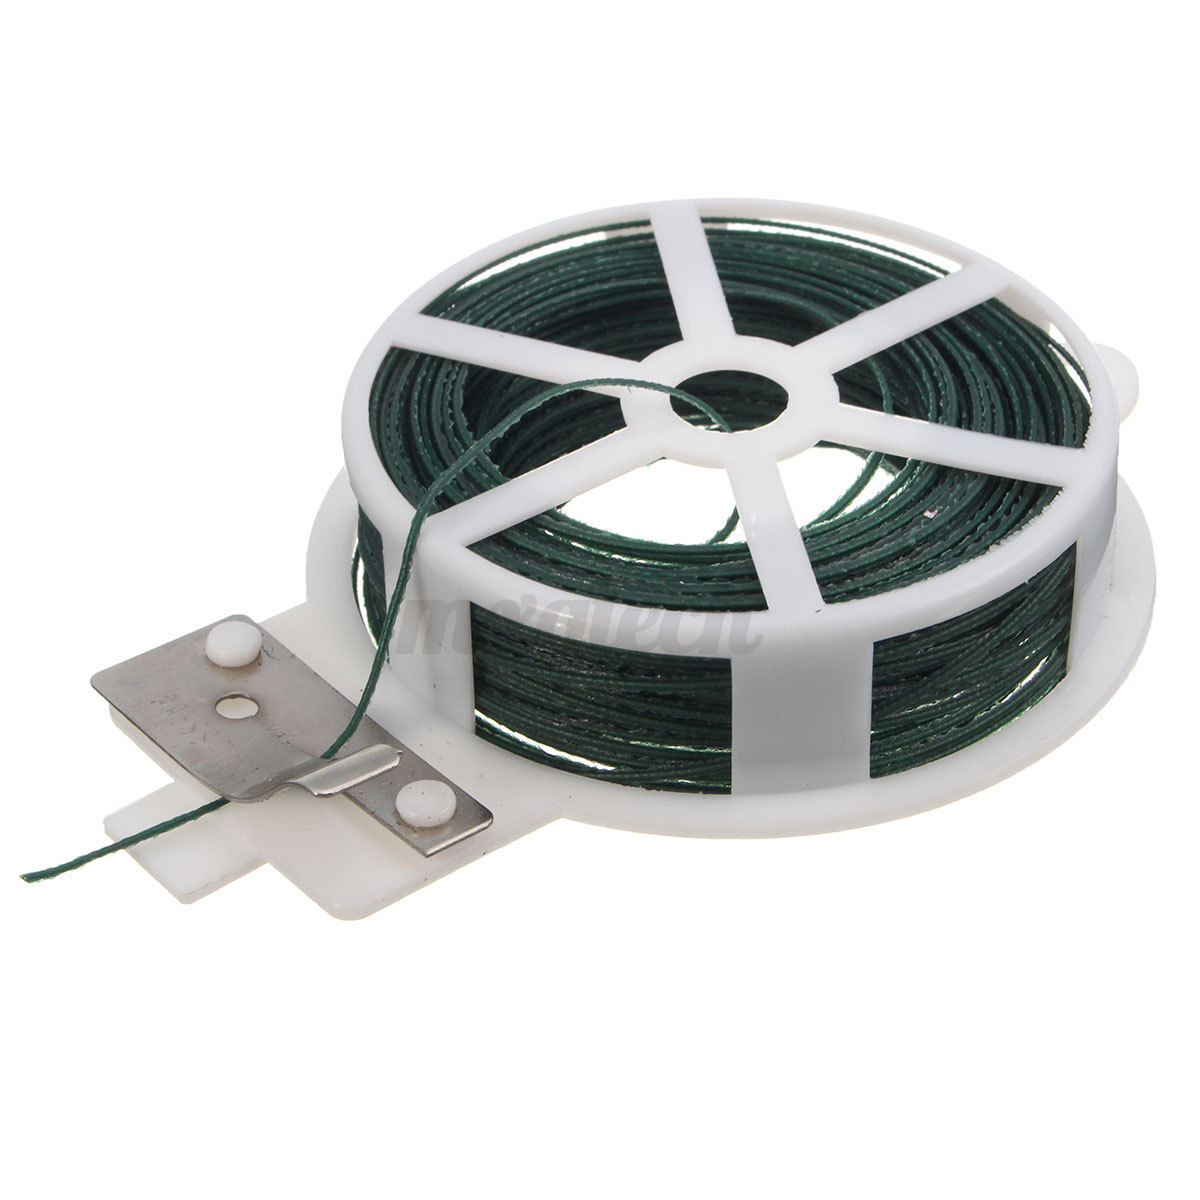 Cable Twist Tie : M roll wire twist ties green garden cable plastic